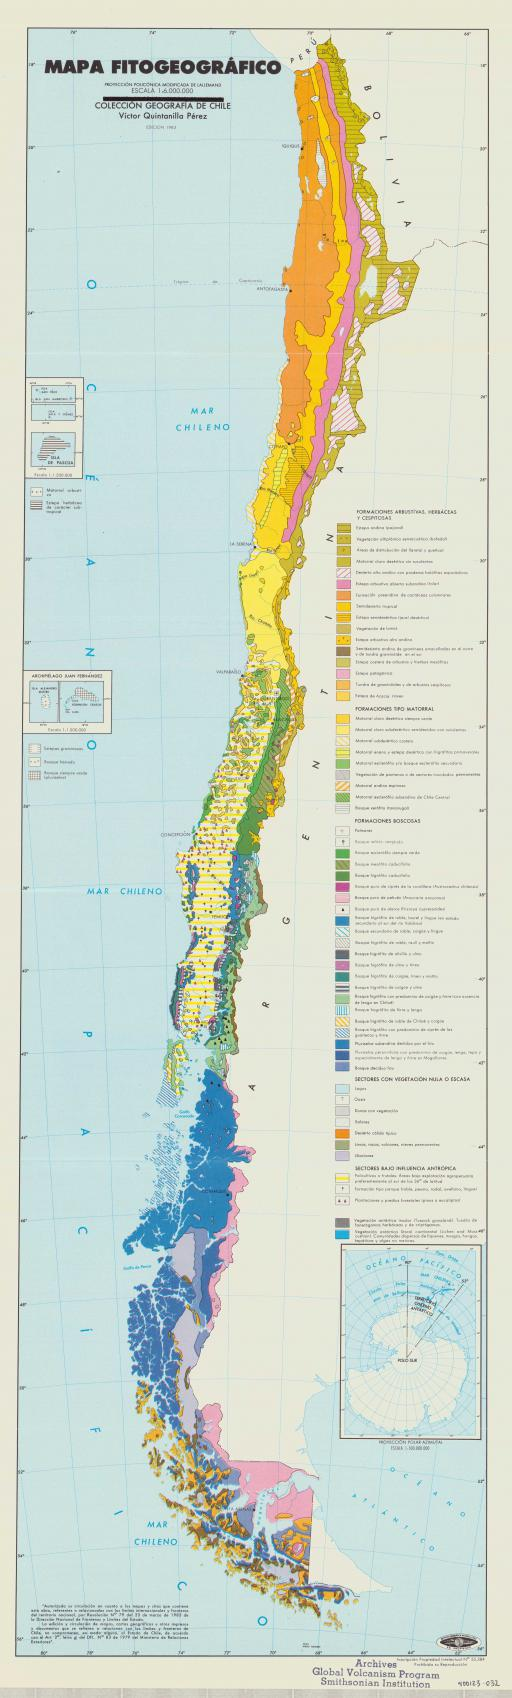 Map of Mapa Fitogeografico